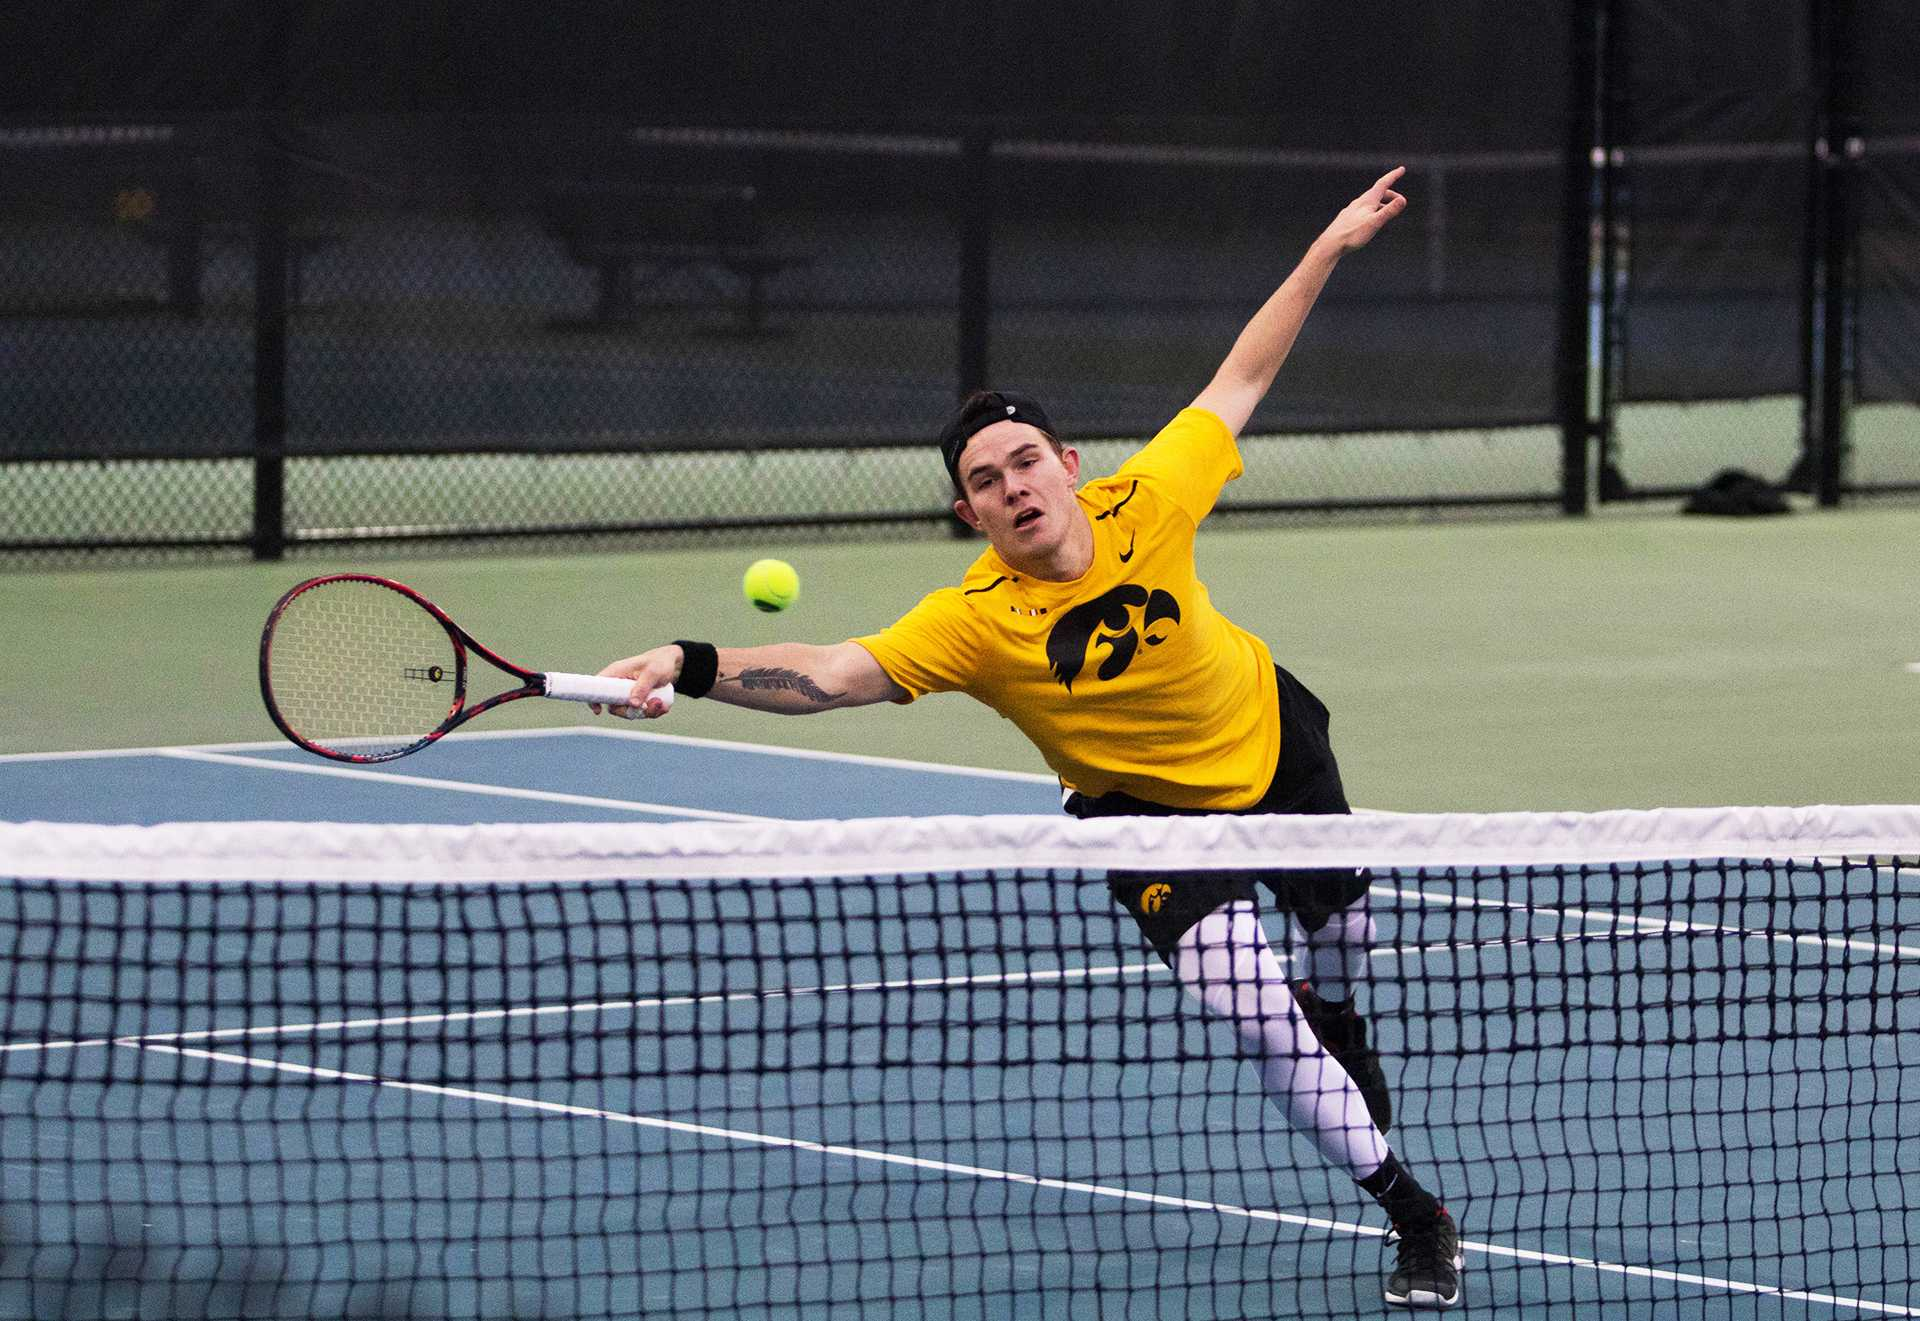 Jonas Larsen reaches for the ball during a match against Indiana at the HTRC on April 13, 2018. The Hawkeyes were defeated 4-3. (Megan Nagorzanski/The Daily Iowan)